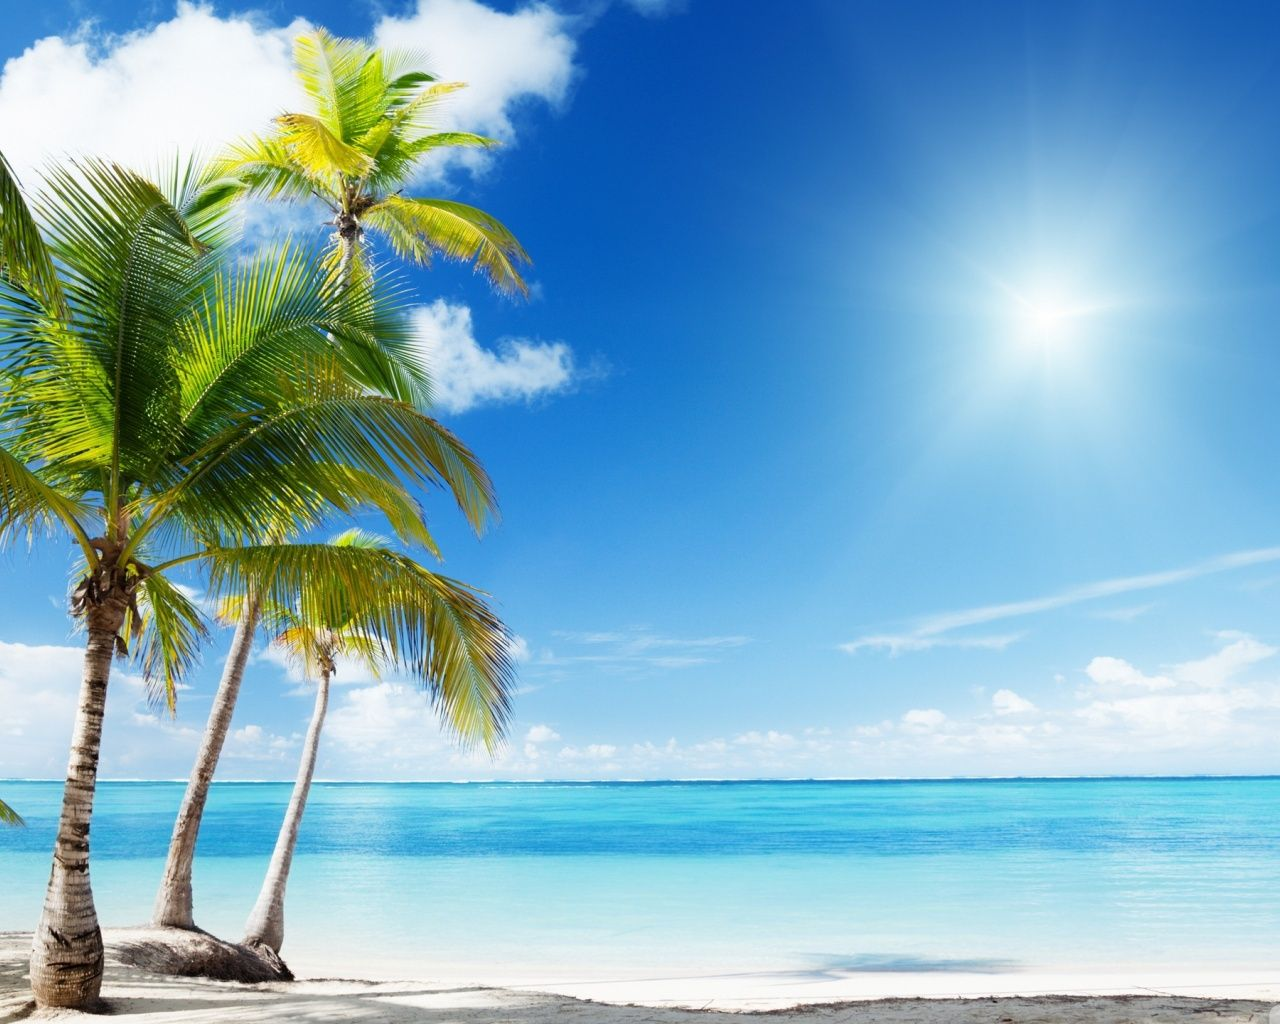 Hd Tropical Island Beach Paradise Wallpapers And Backgrounds: 1280x1024 Tropical Beach Desktop PC And